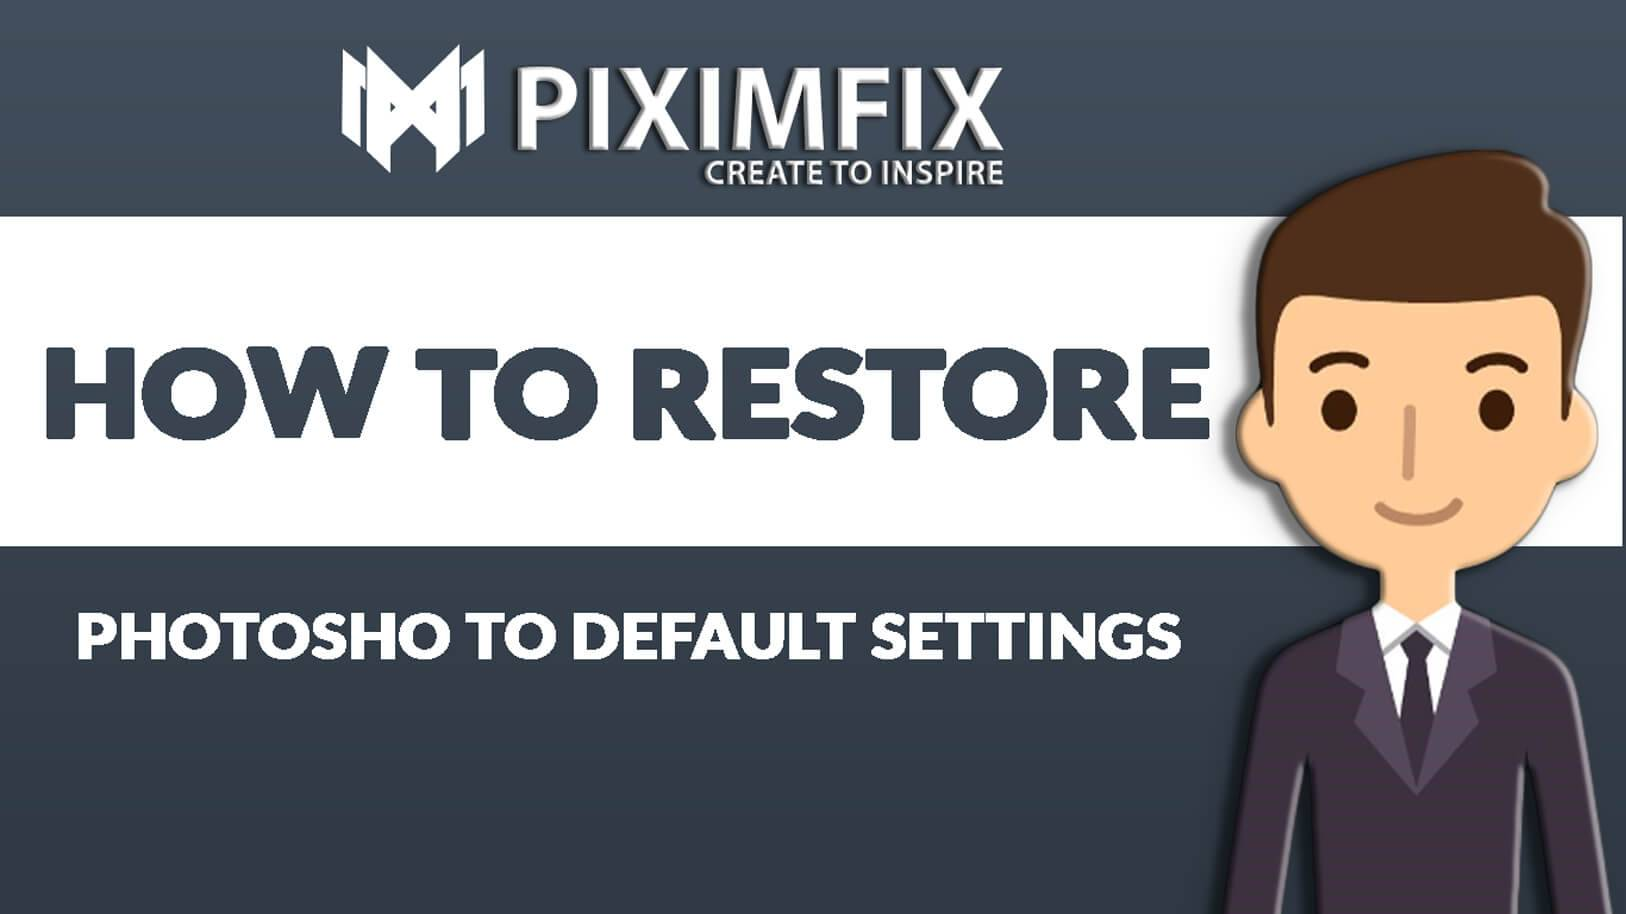 HOW TO RESTORE PHOTOSHOP TO DEFAULT SETTINGS